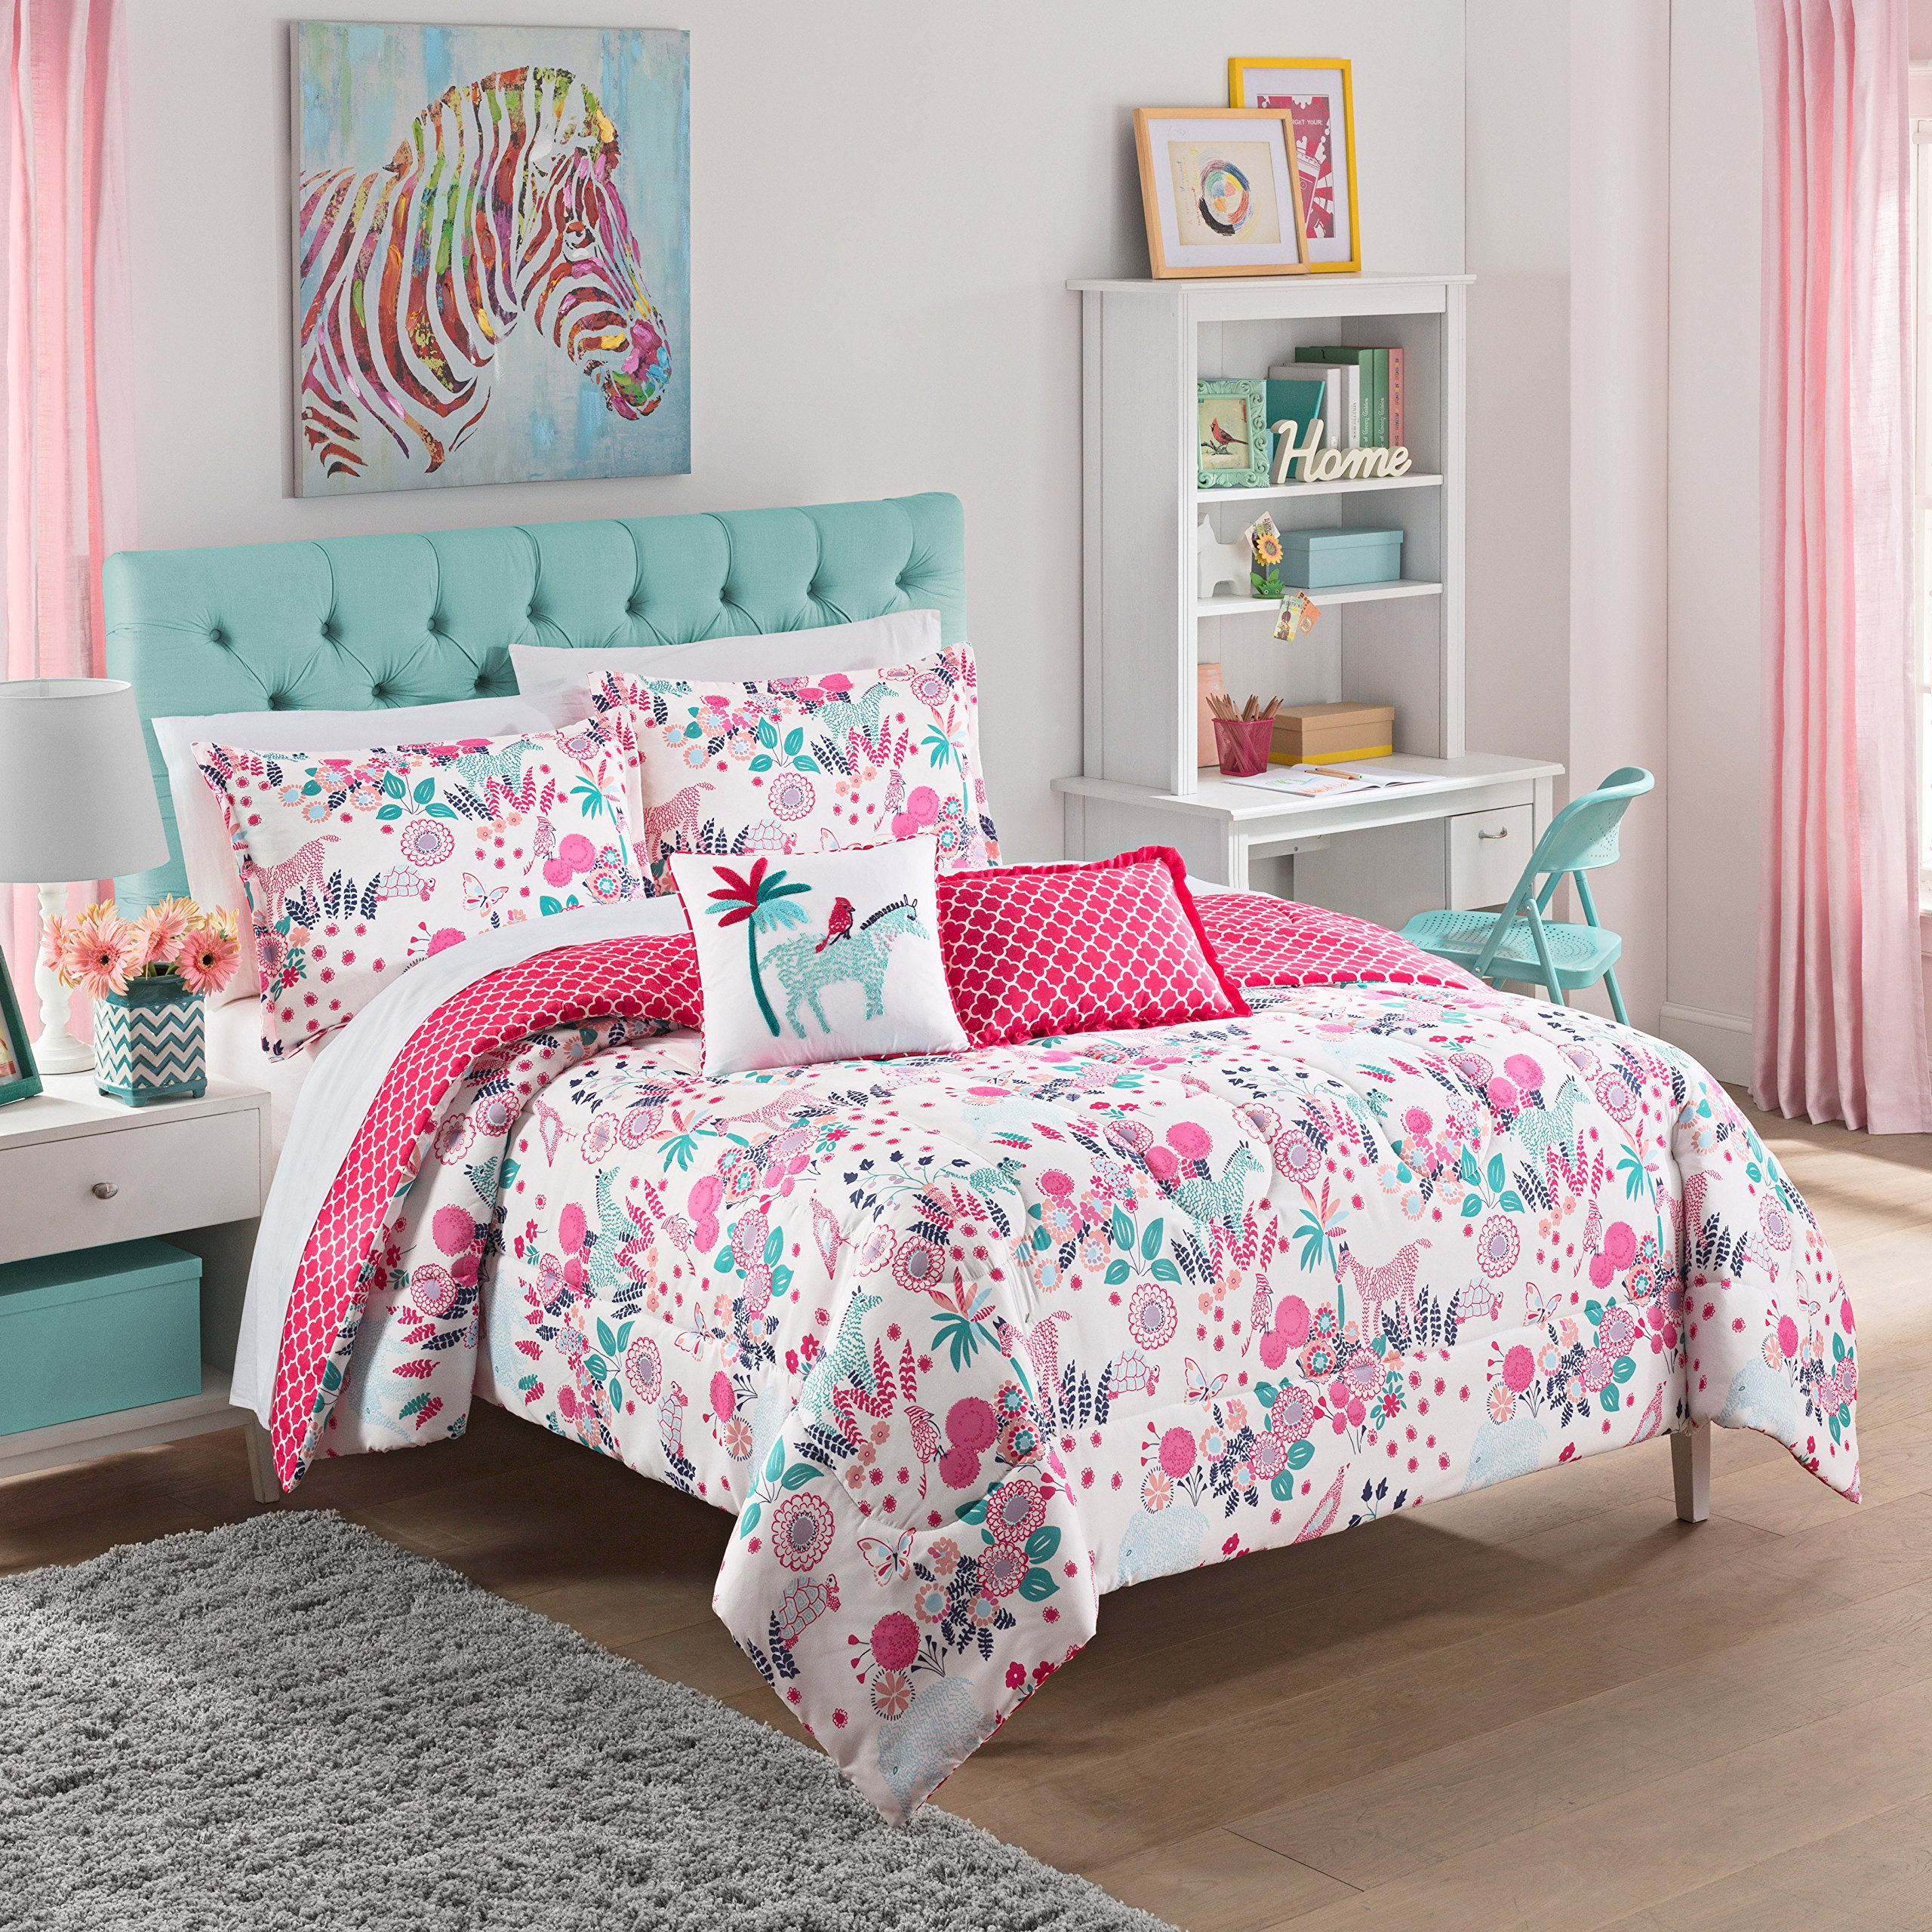 Waverly Kids 16440BEDDTWNPNK Reverie 86-inch by 68-Inch Reversible Twin Bedding Collection, Pink by WAVERLY